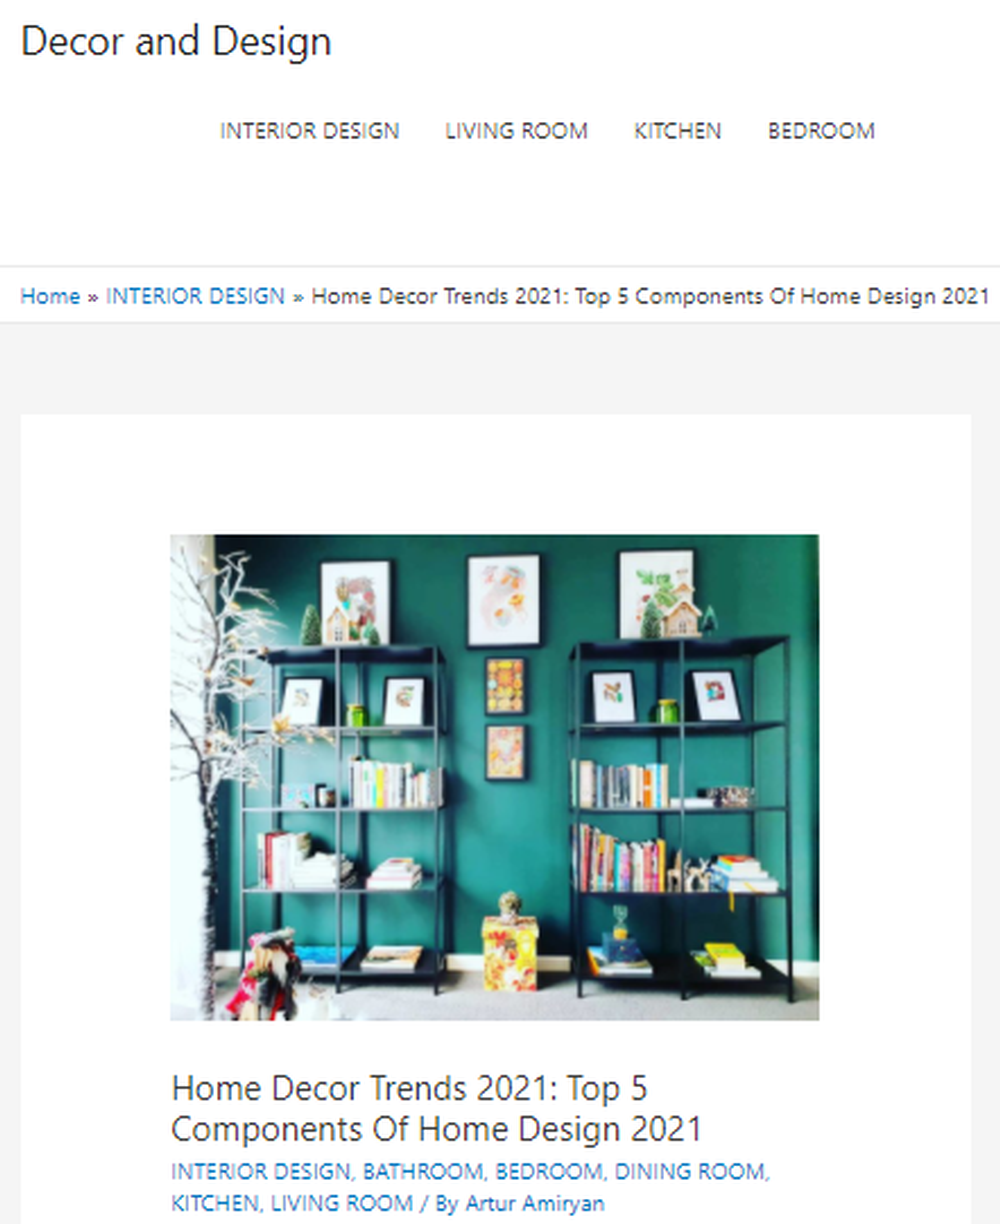 Home Decor Trends 2021 - Top 5 Components Of Home Design 2021